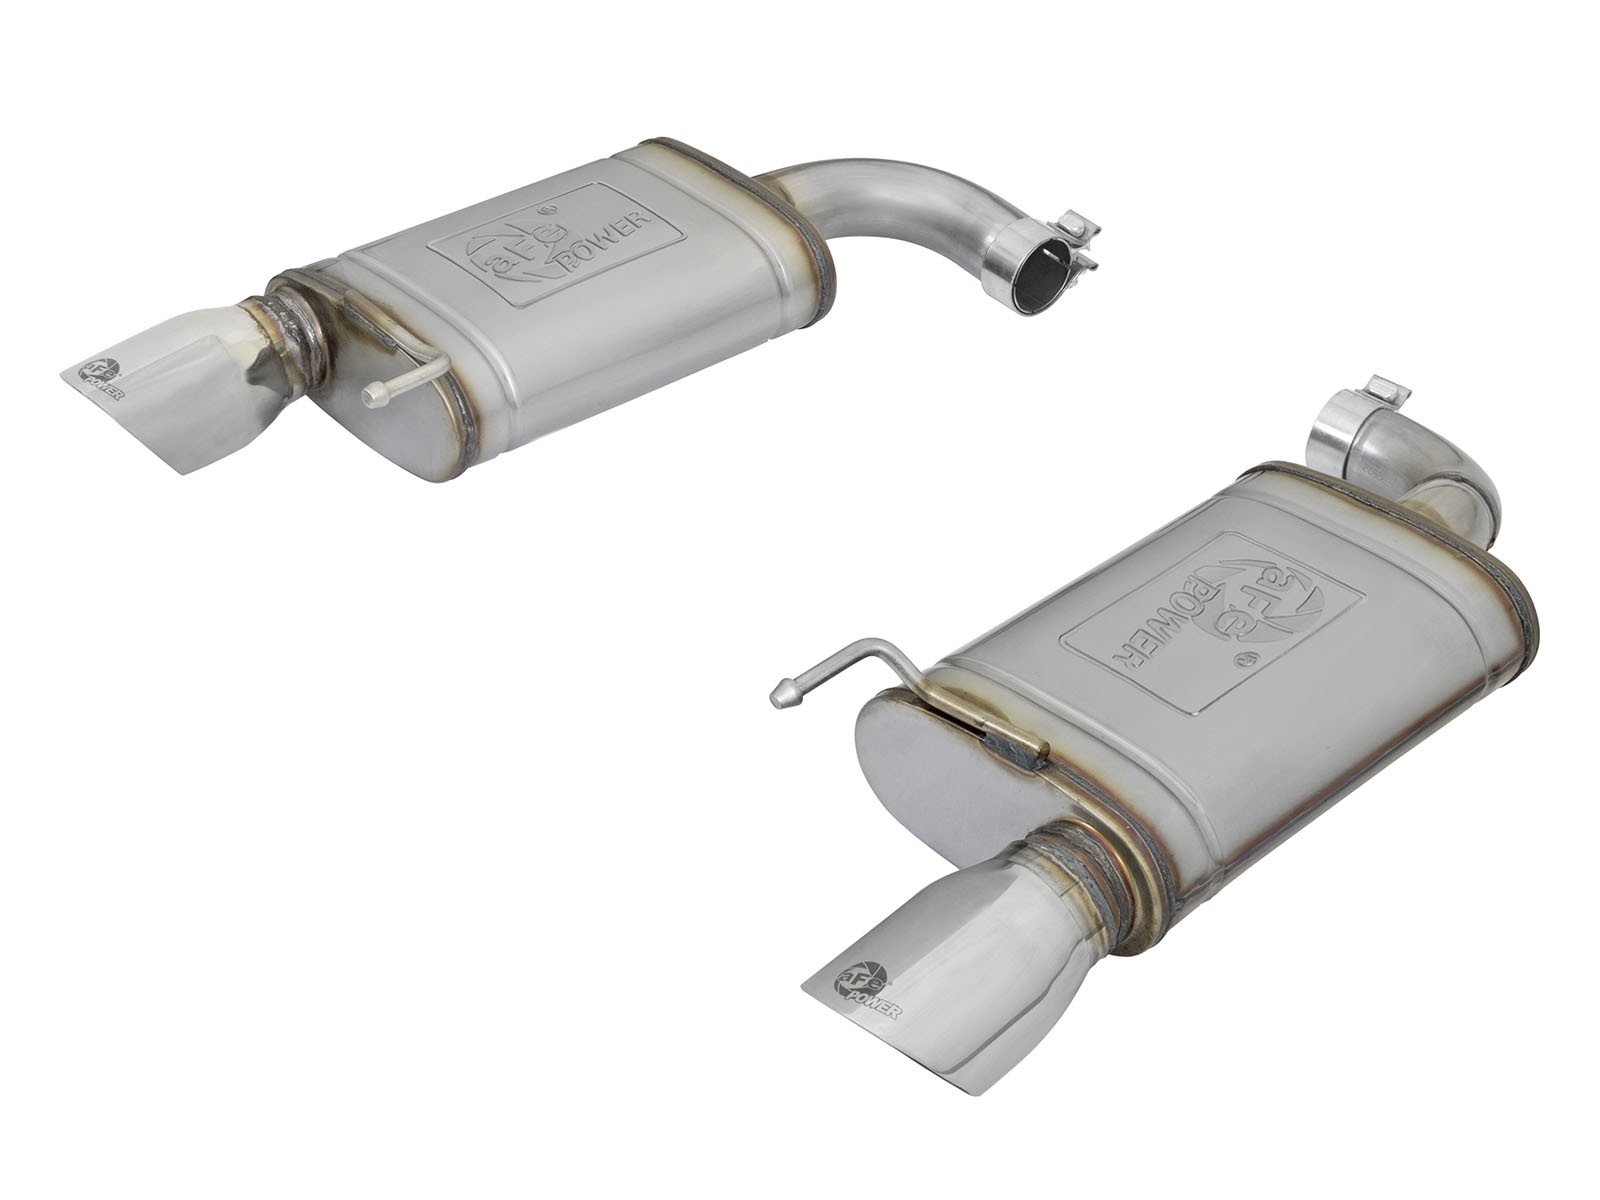 """aFe POWER 49-43085-P MACH Force-Xp 2-1/2"""" 409 Stainless Steel Axle-Back Exhaust System"""